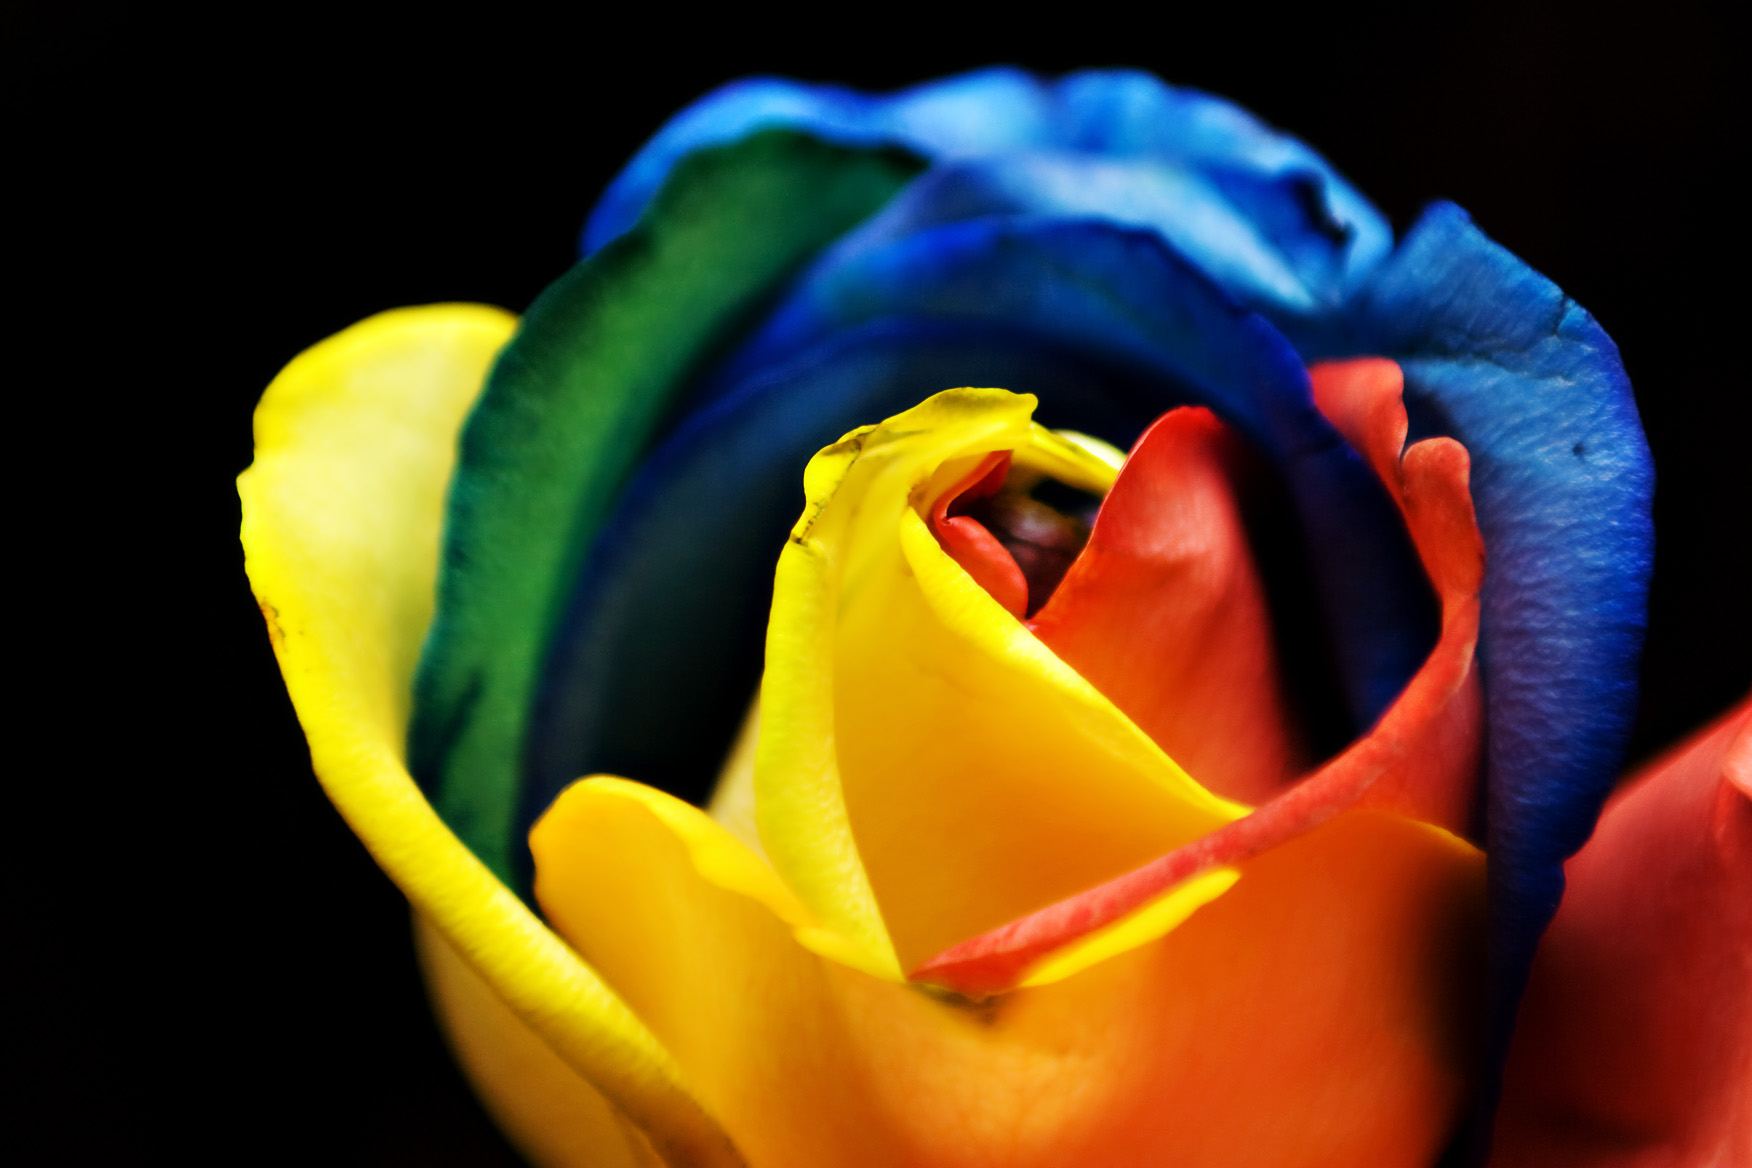 Description Rainbow Rose (3366550029).jpg